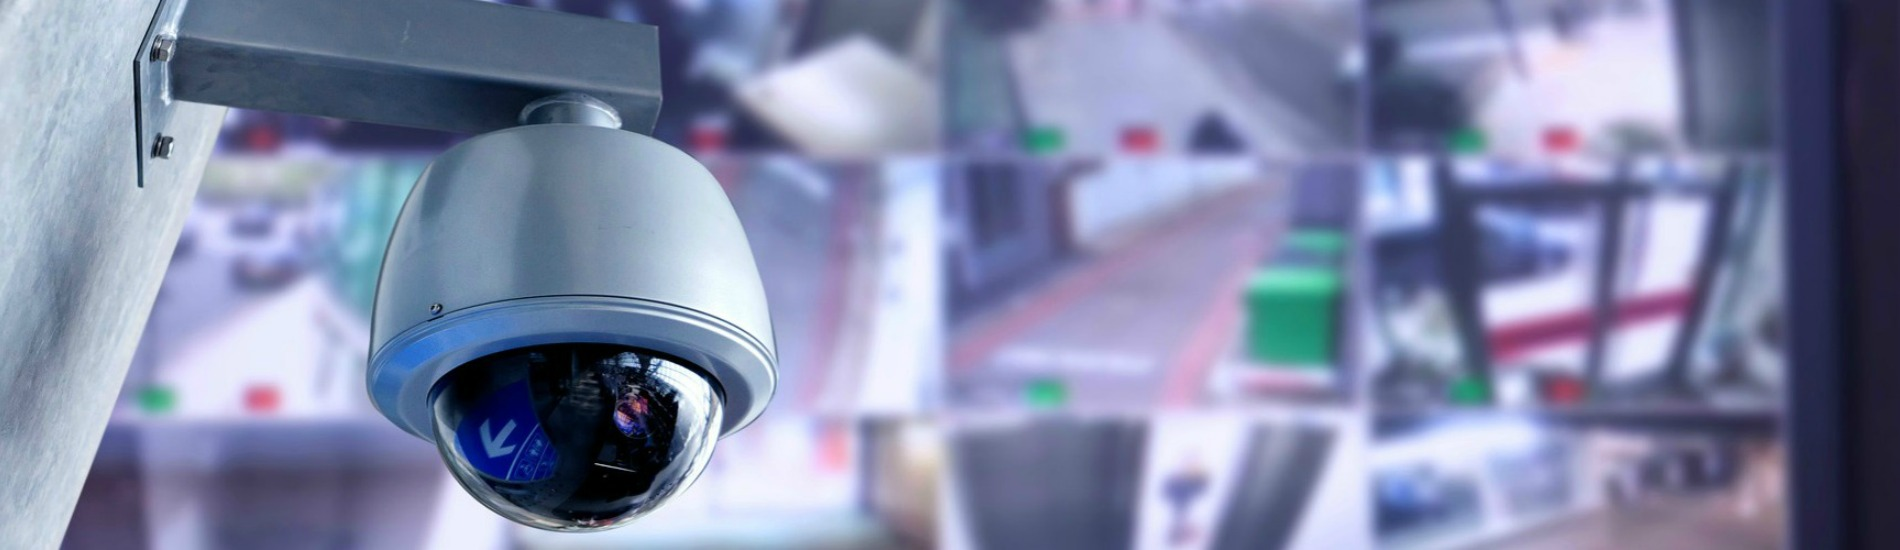 How do security systems help to prevent burglary and violence at your workplace?